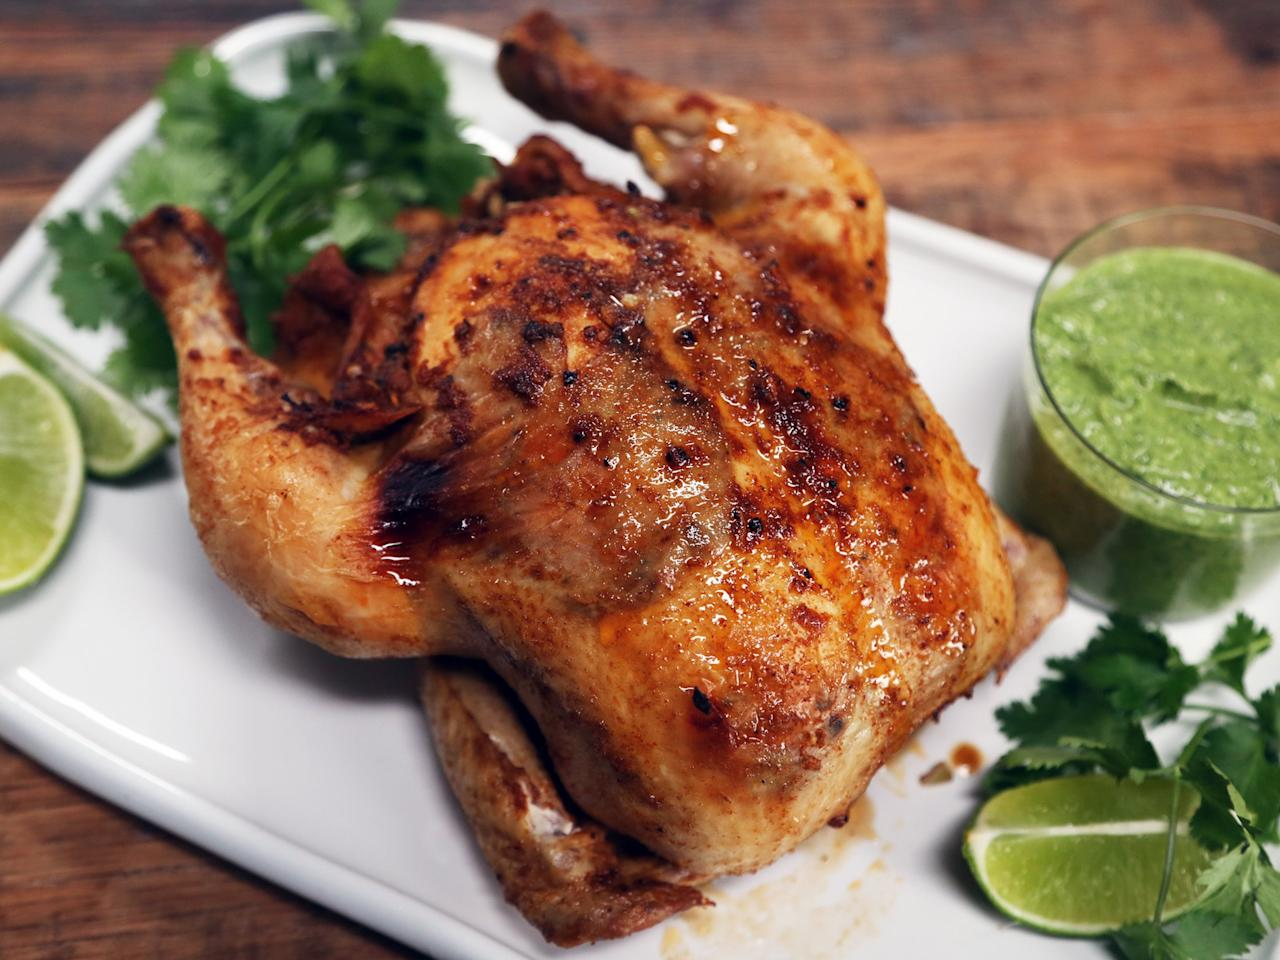 """<p>It's recipes like this one—which requires only 20 minutes of hands-on cooking to create an incredible (seriously, our test kitchen staff was blown away by the flavor this easy chicken dinner packed) whole-bird main course—that remind us exactly why we love the Instant Pot.</p> <p><a href=""""https://www.myrecipes.com/well-done-recipes/instant-pot-peruvian-chicken"""">Instant Pot Peruvian Chicken Recipe</a></p>"""